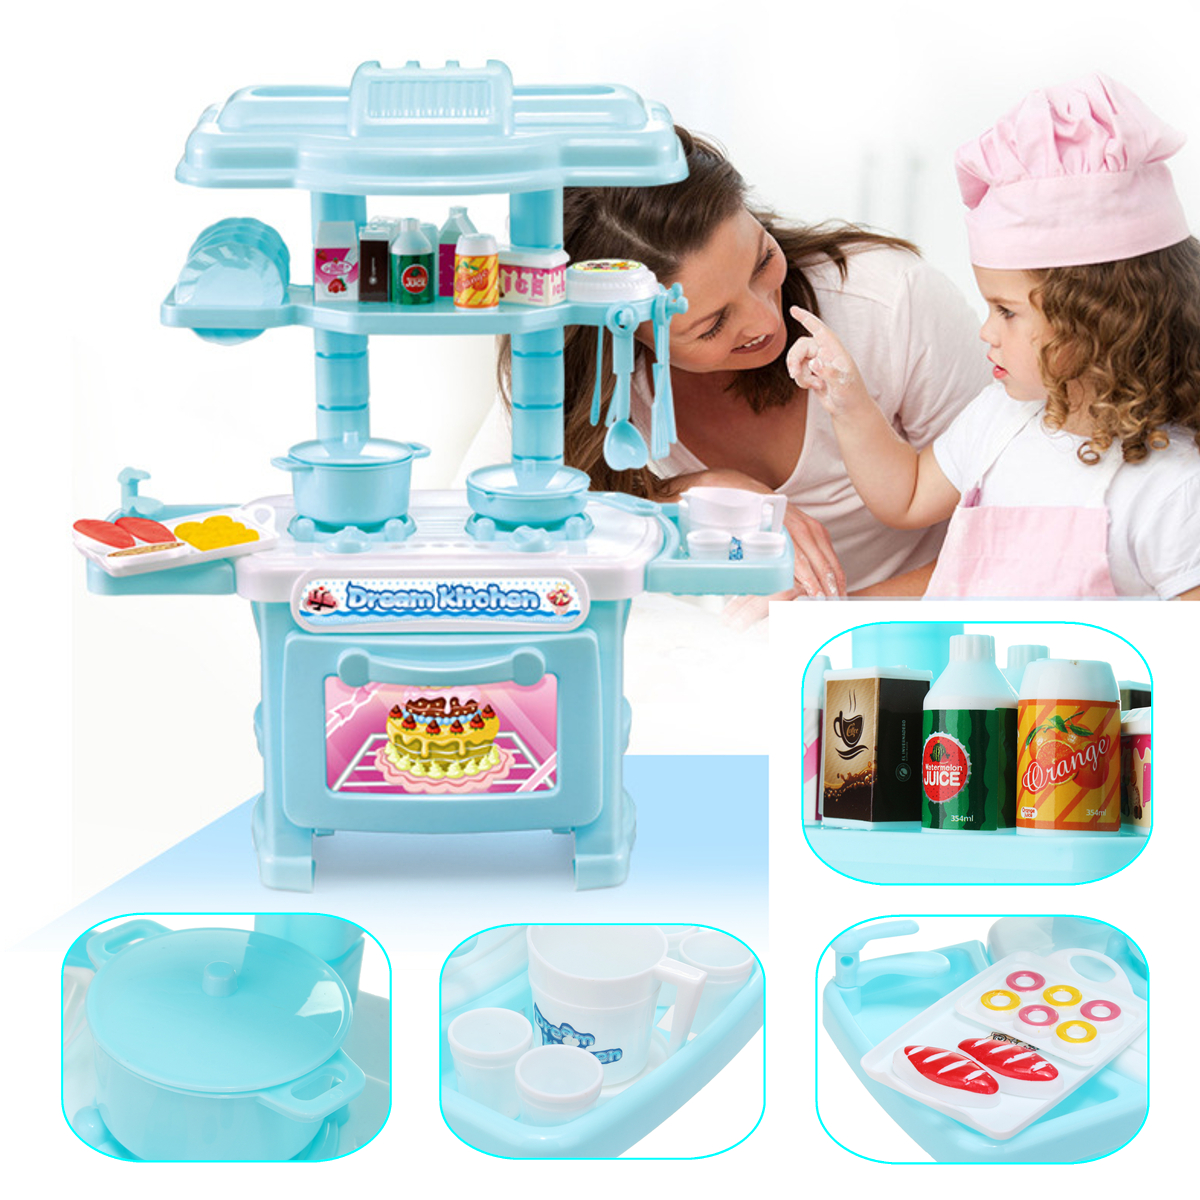 Fun Simulation Appliance Children's Toy Cooking Play Set Kitchen Pretend Play Toys Set Appliance for Baby Kids Both Boys and Girls Perfect for Your Little Chef (Pink/Blue)